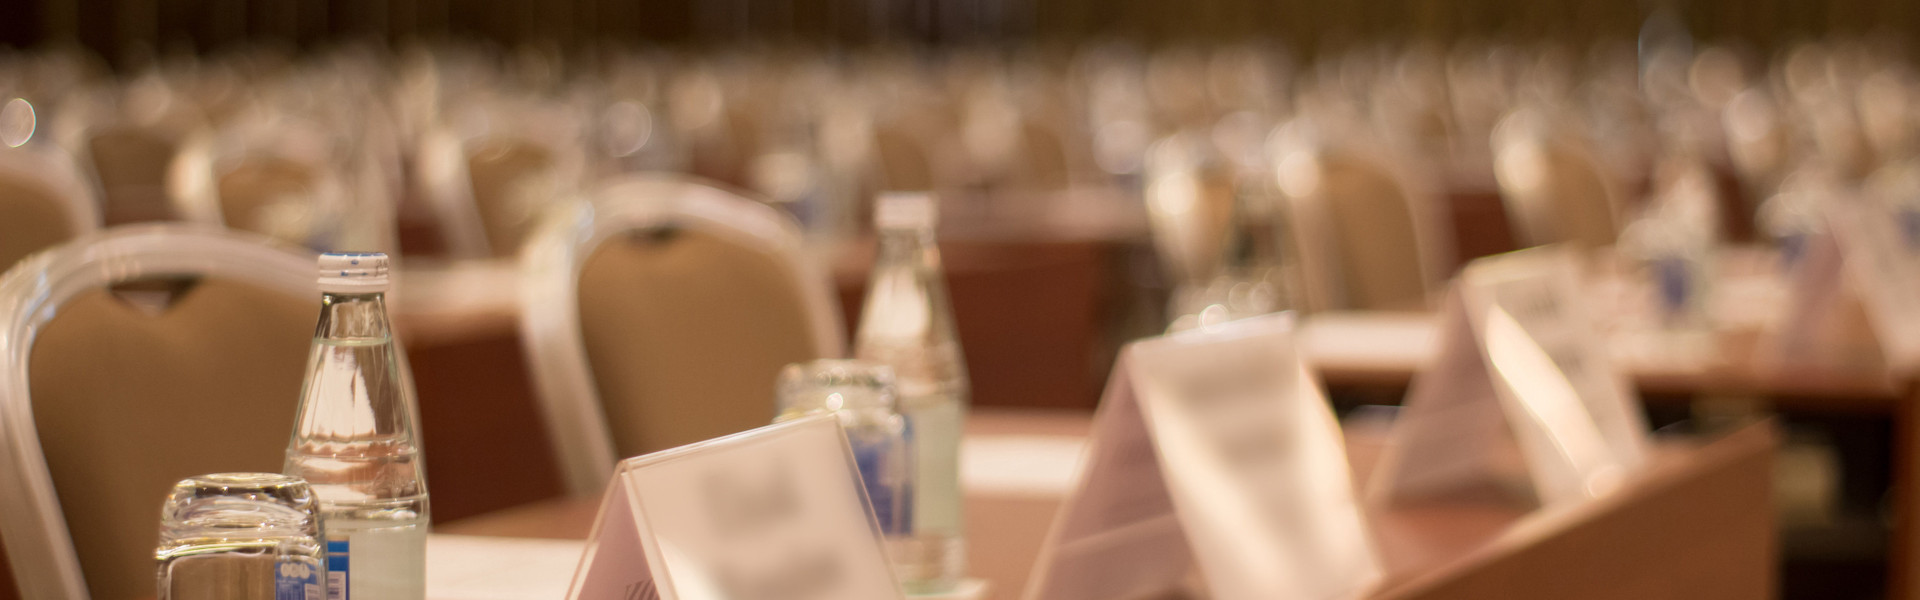 Setup for NYC group deal event at hotel Near Grand Central Terminal NYC | Westgate New York Grand Central Hotel